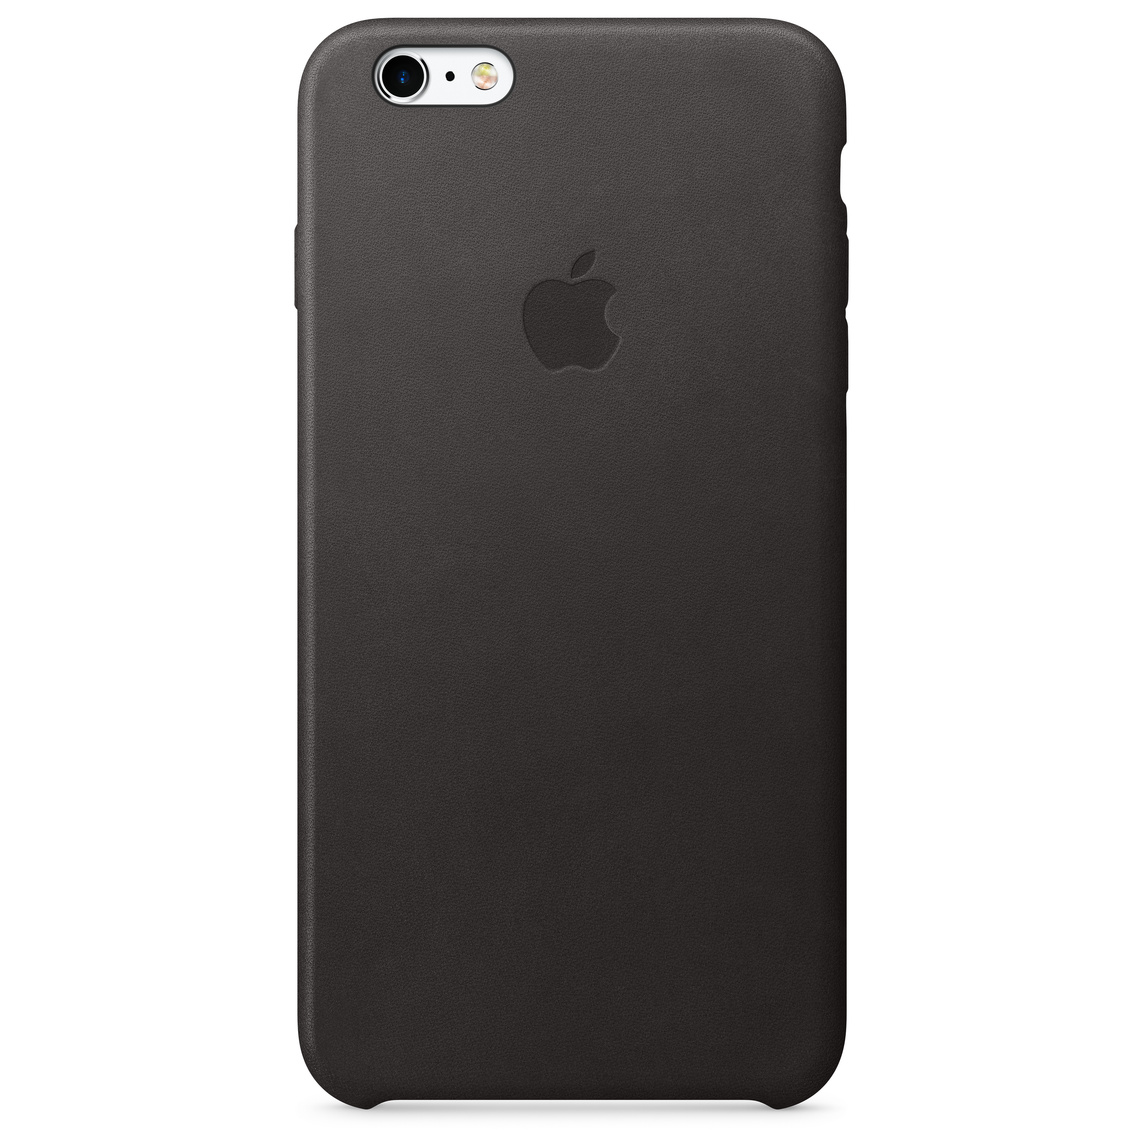 outlet store sale e4666 8a7d1 iPhone 6 Plus / 6s Plus Leather Case - Black